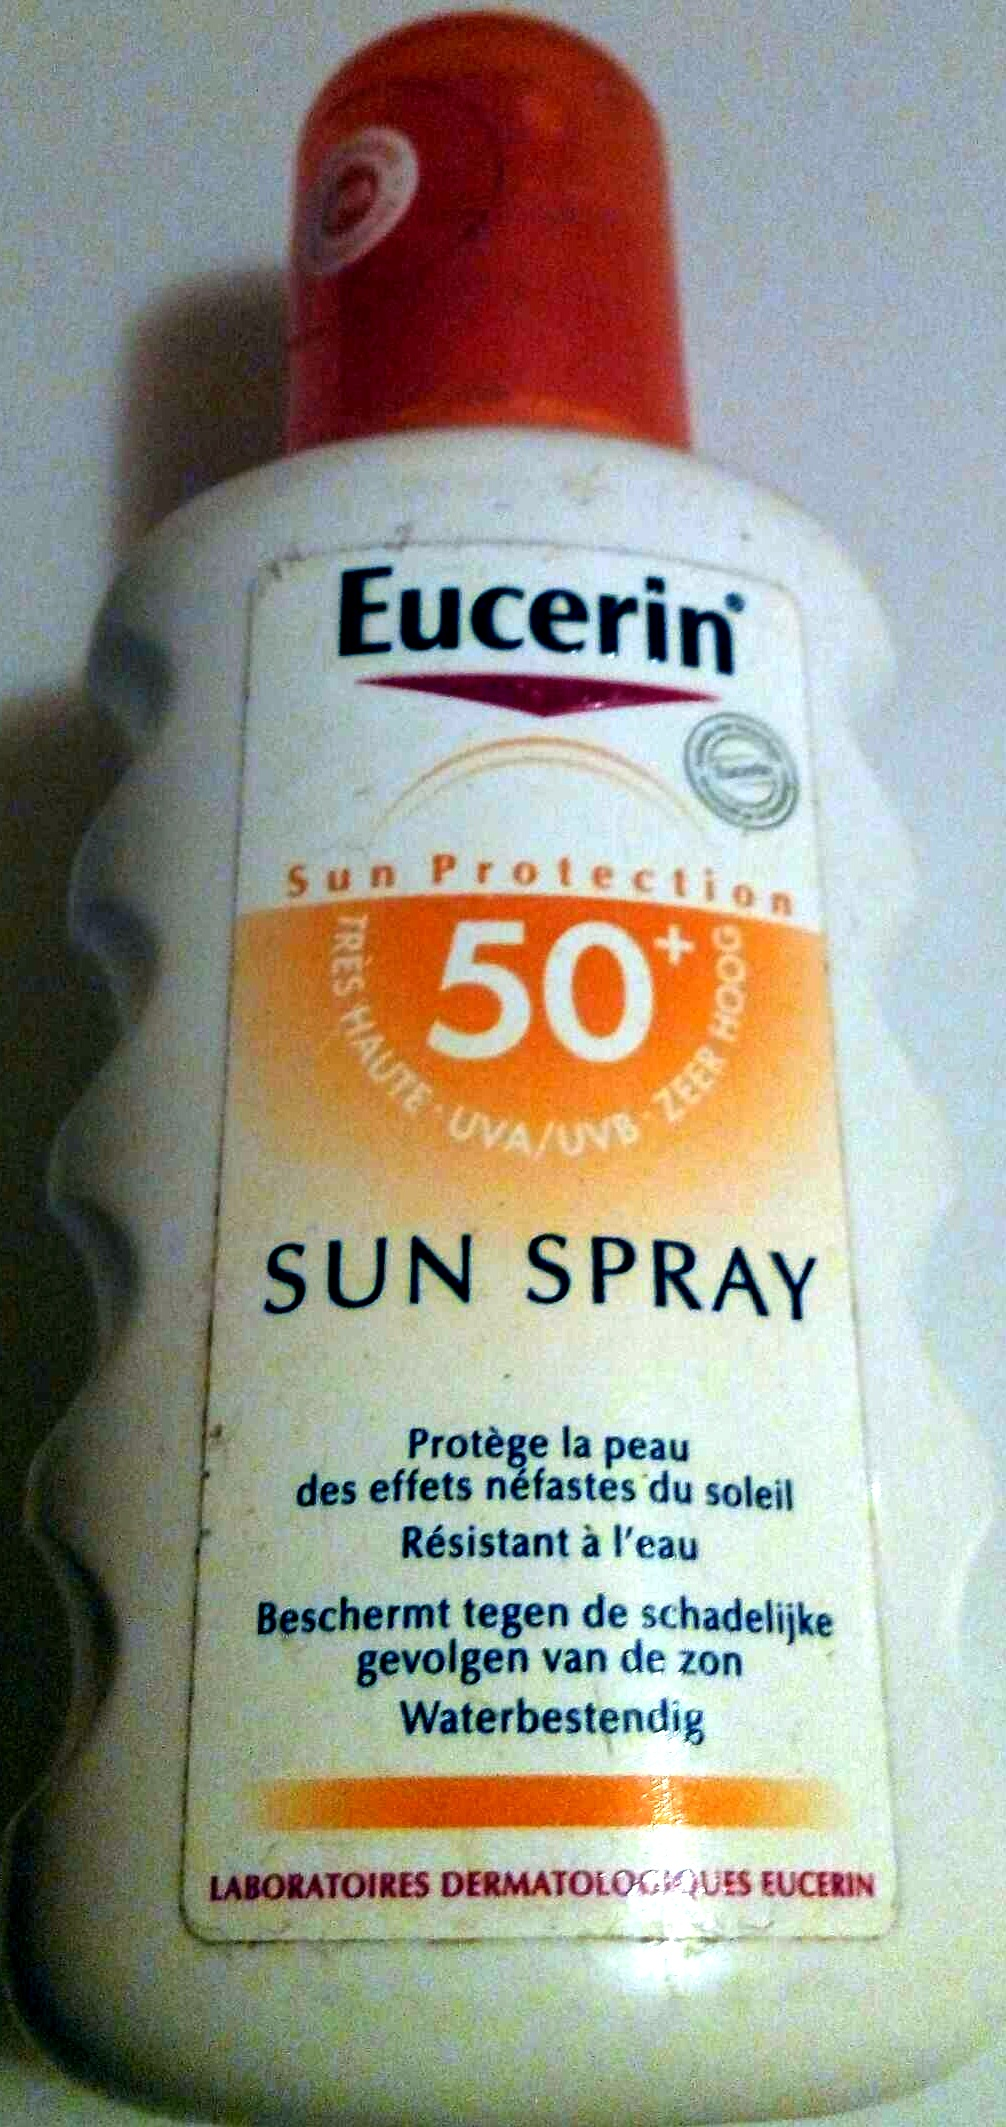 Sun spray 50+ - Product